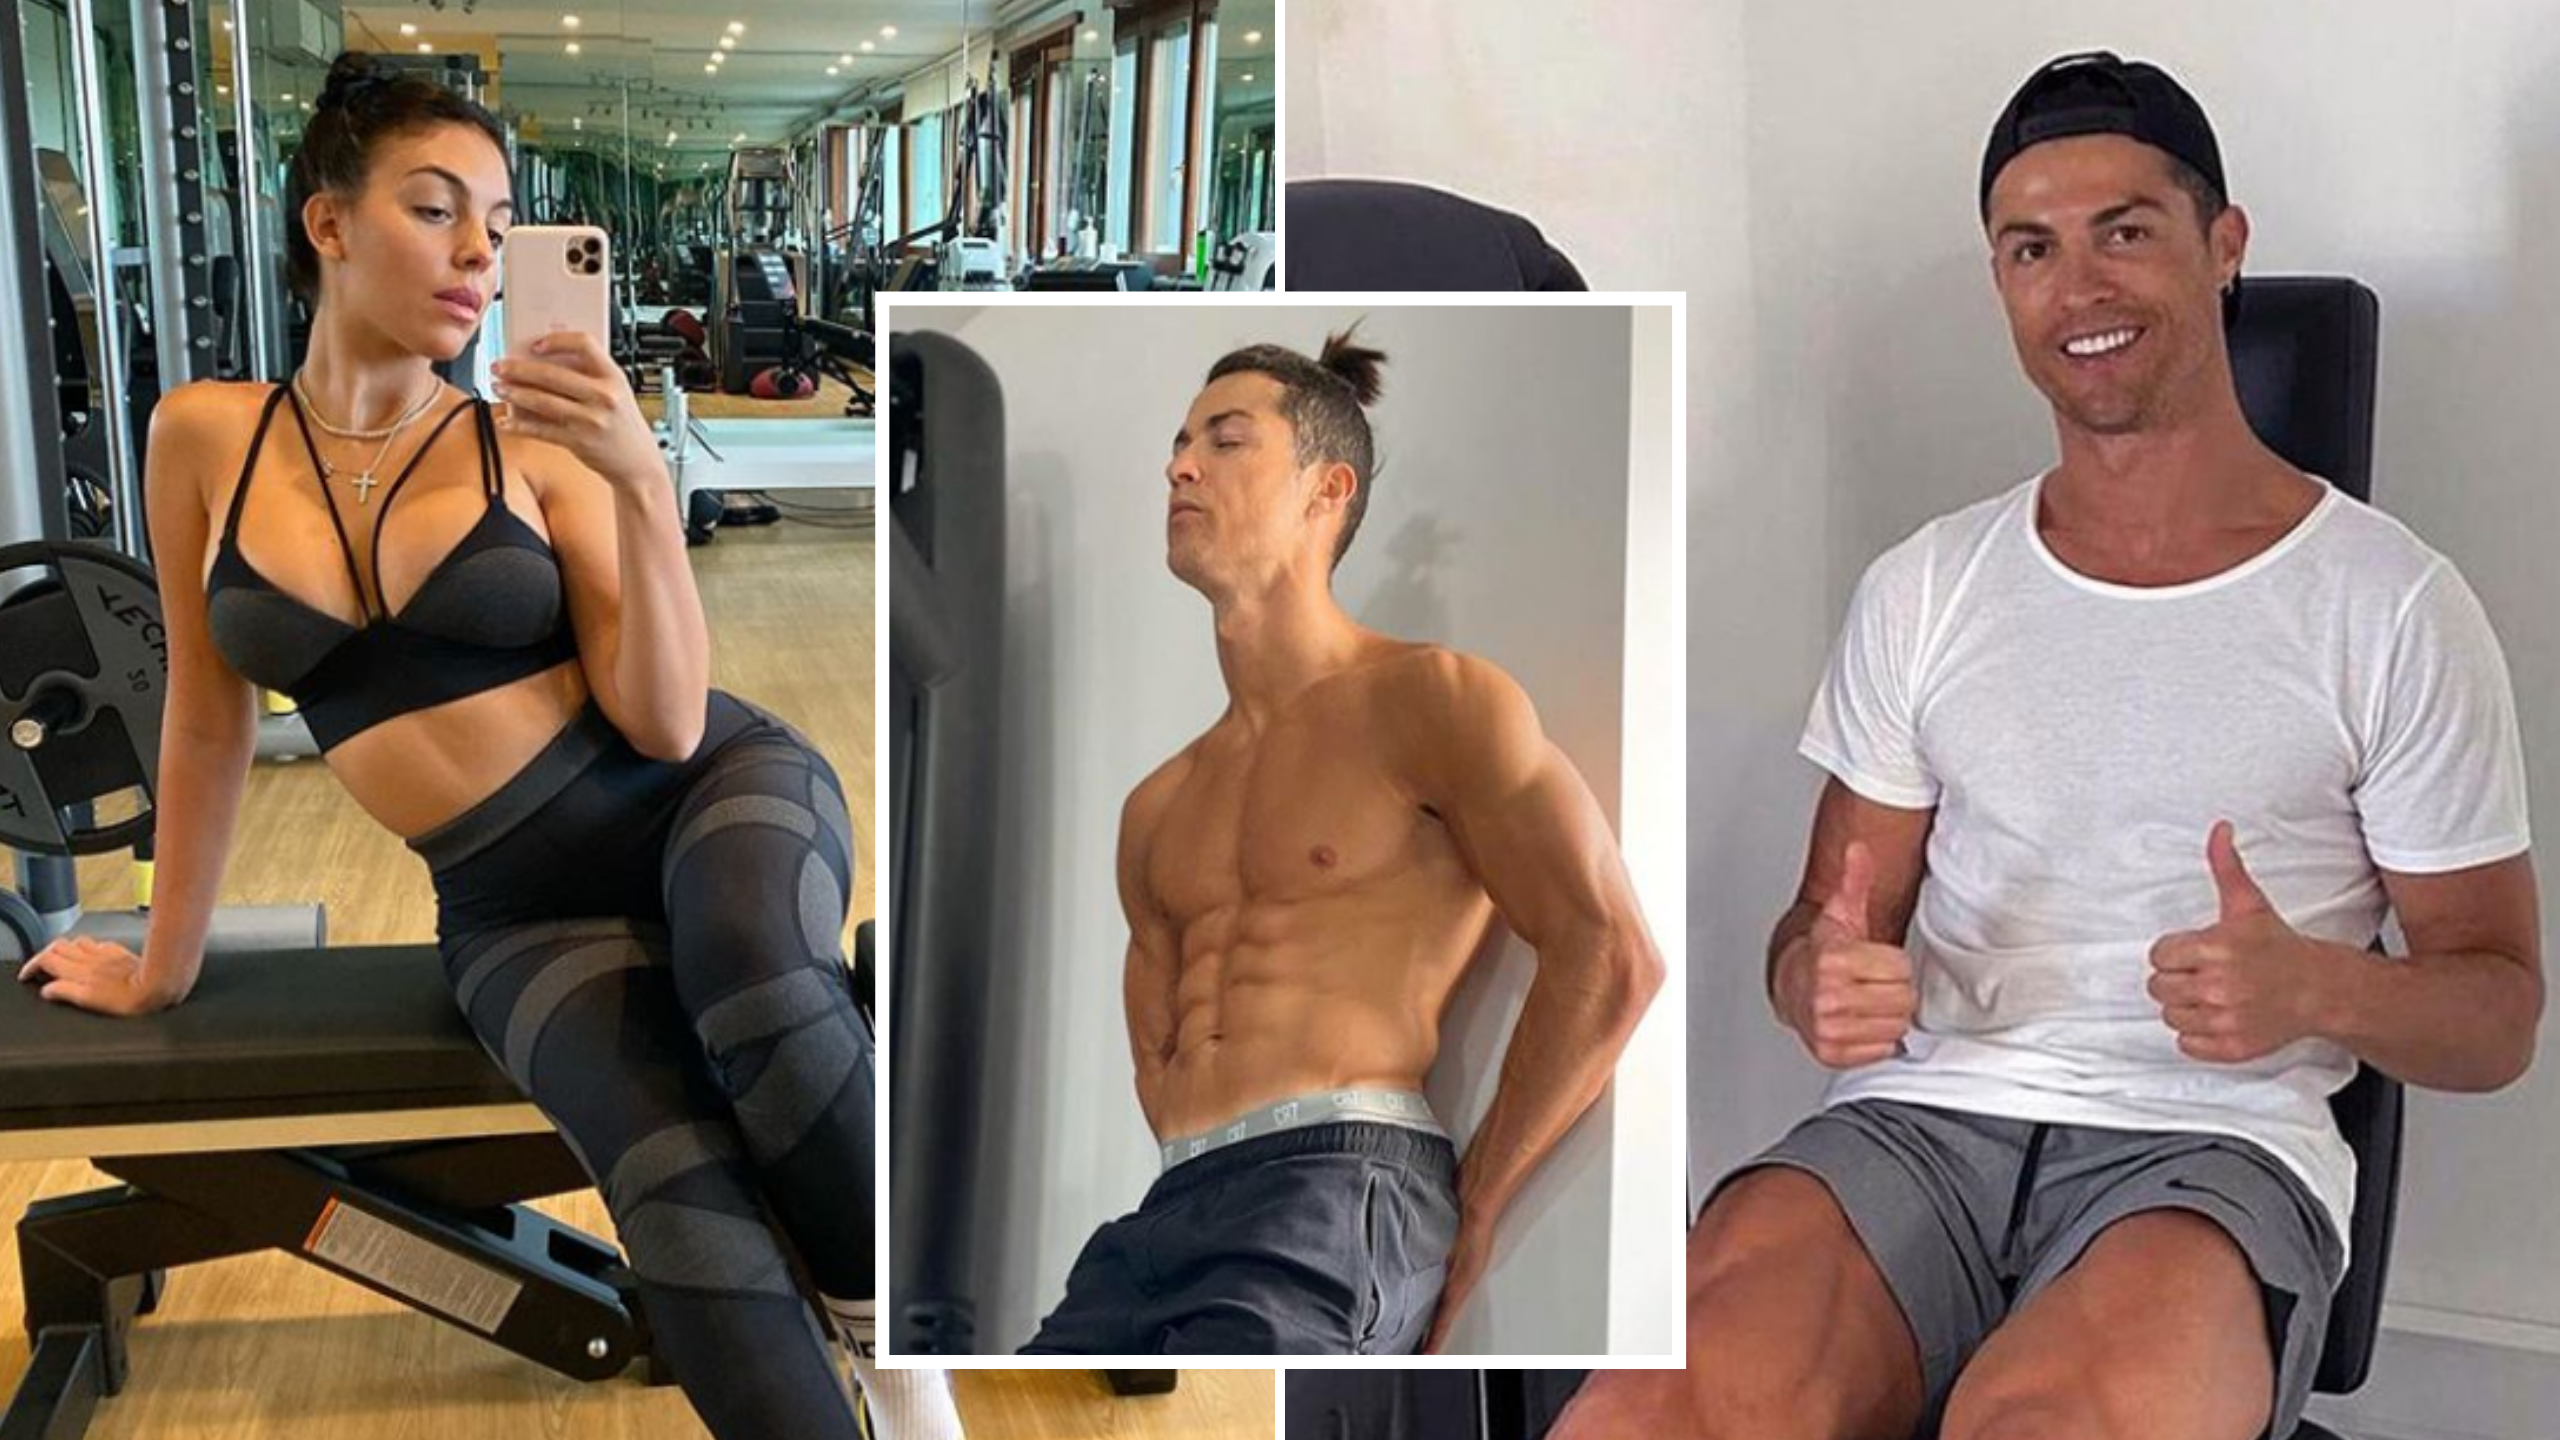 Cristiano Ronaldo S Girlfriend Reveals Why She Feels Ashamed Working Out With Him Sportbible